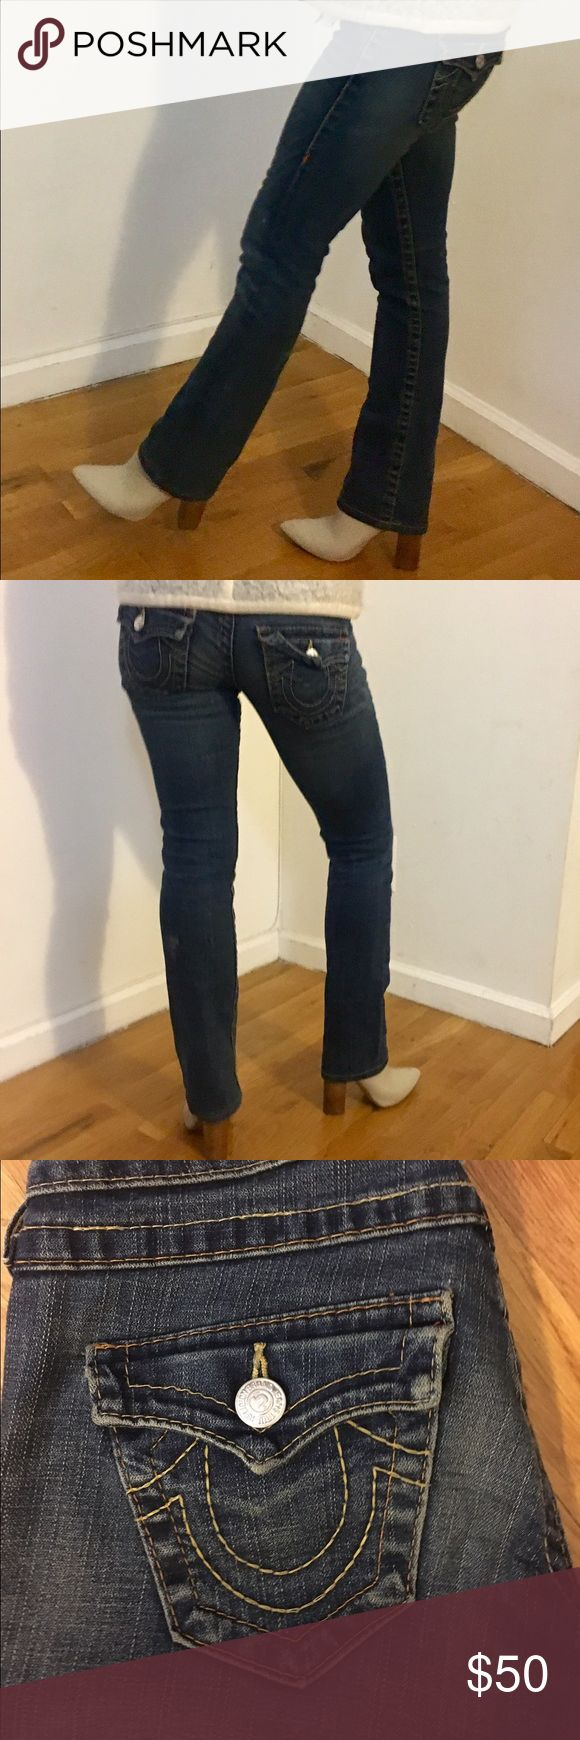 "True Religion Women's jeans! True Religion boot cut petite jeans with nearly no sign of wear! 34"" from hip to bottom and 29"" from crotch to bottom. Comfy and timeless jeans! Please let me know if you have any questions. True Religion Jeans Boot Cut"